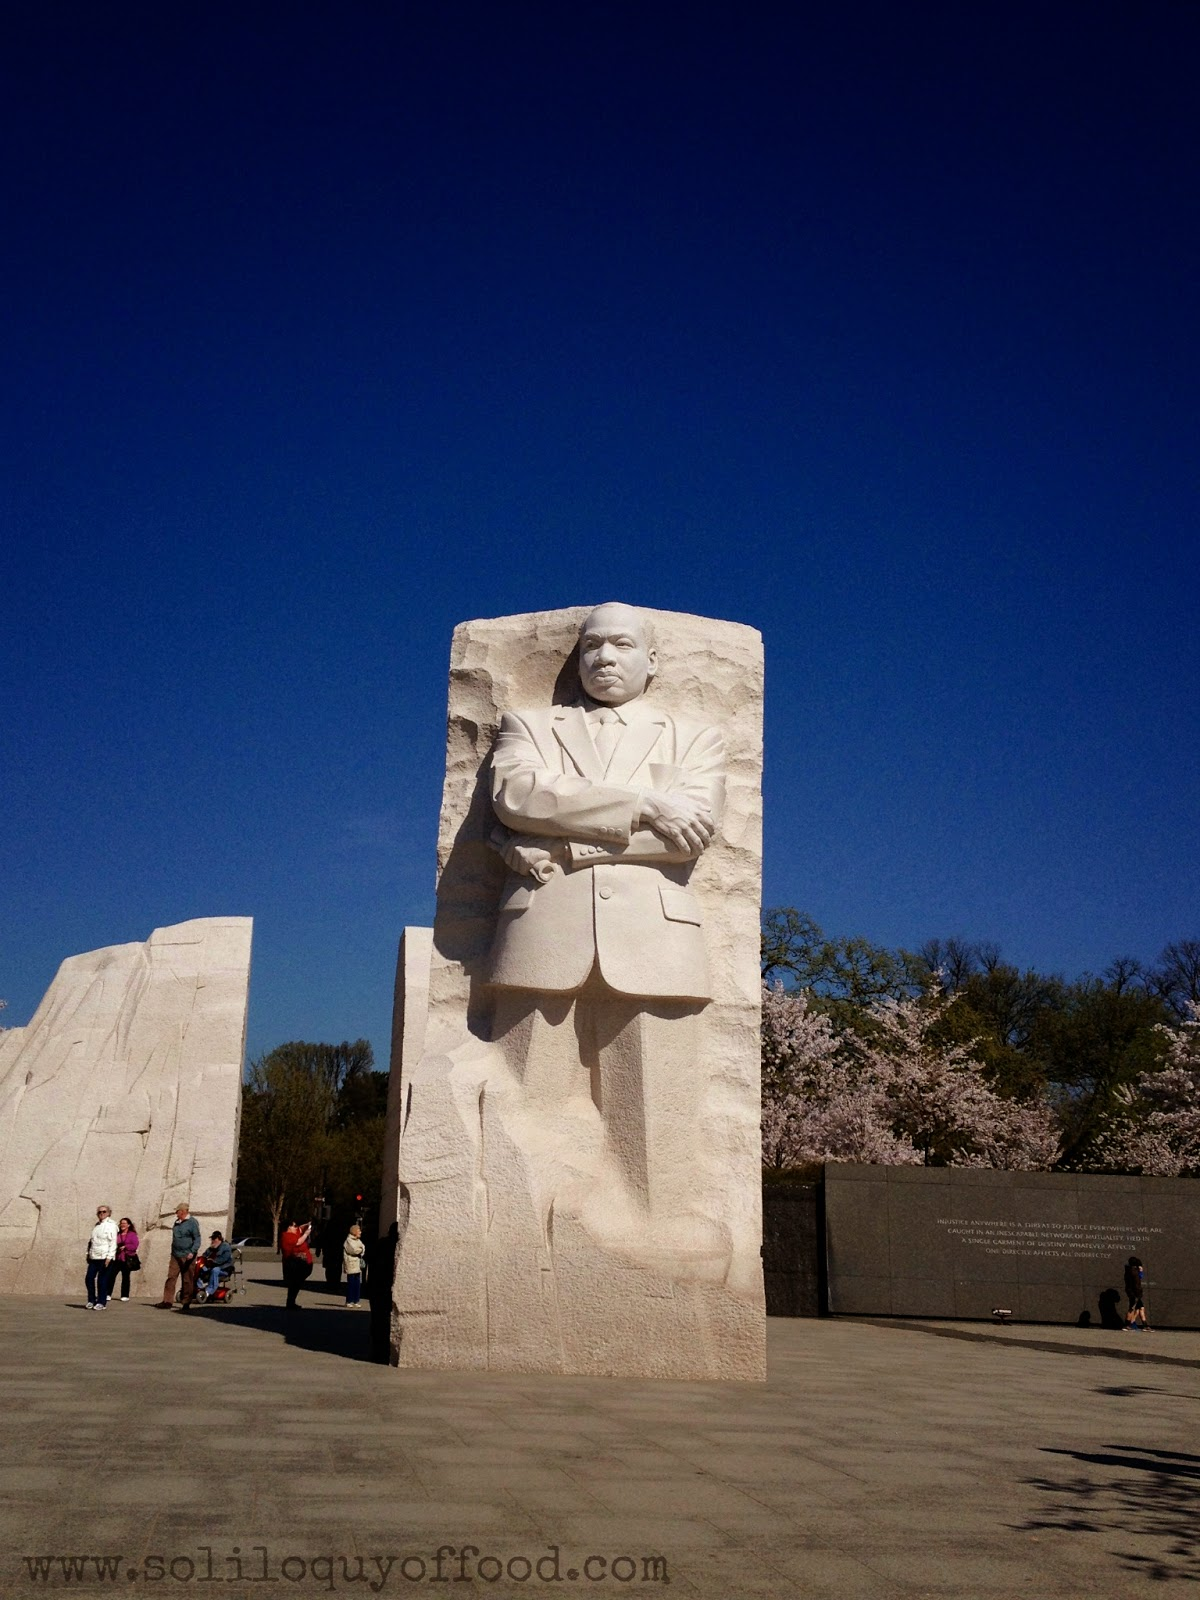 Martin Luther King, Jr. National Memorial - Cherry Blossoms 2014 - www.soliloquyoffood.com